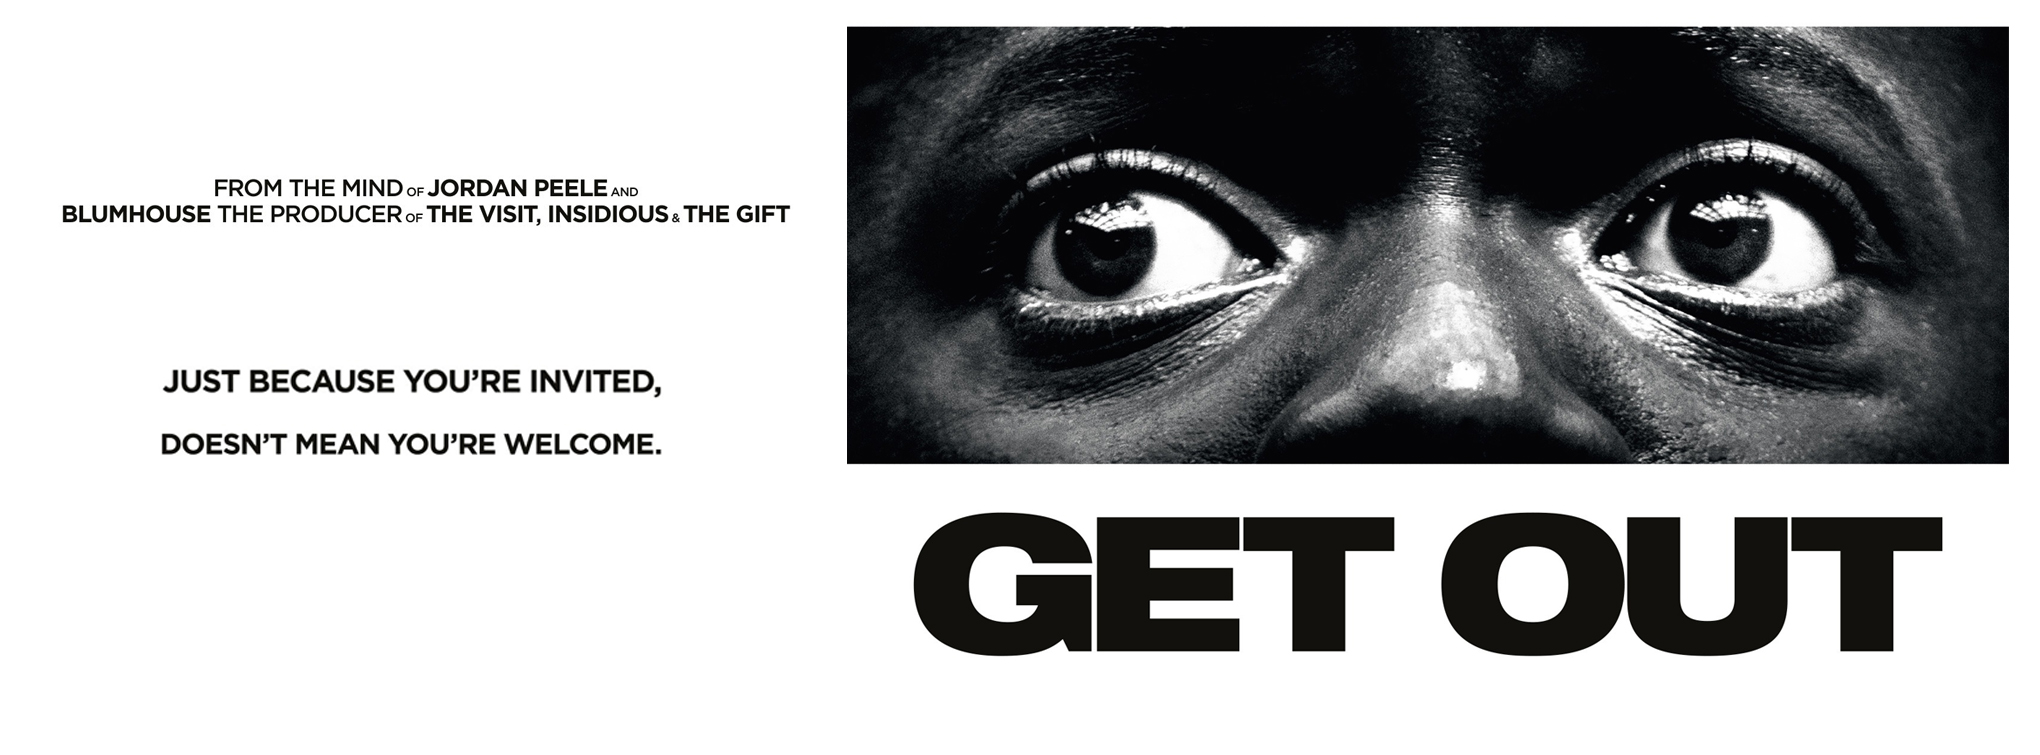 Get Out is now playing at select Fridley Theatres!